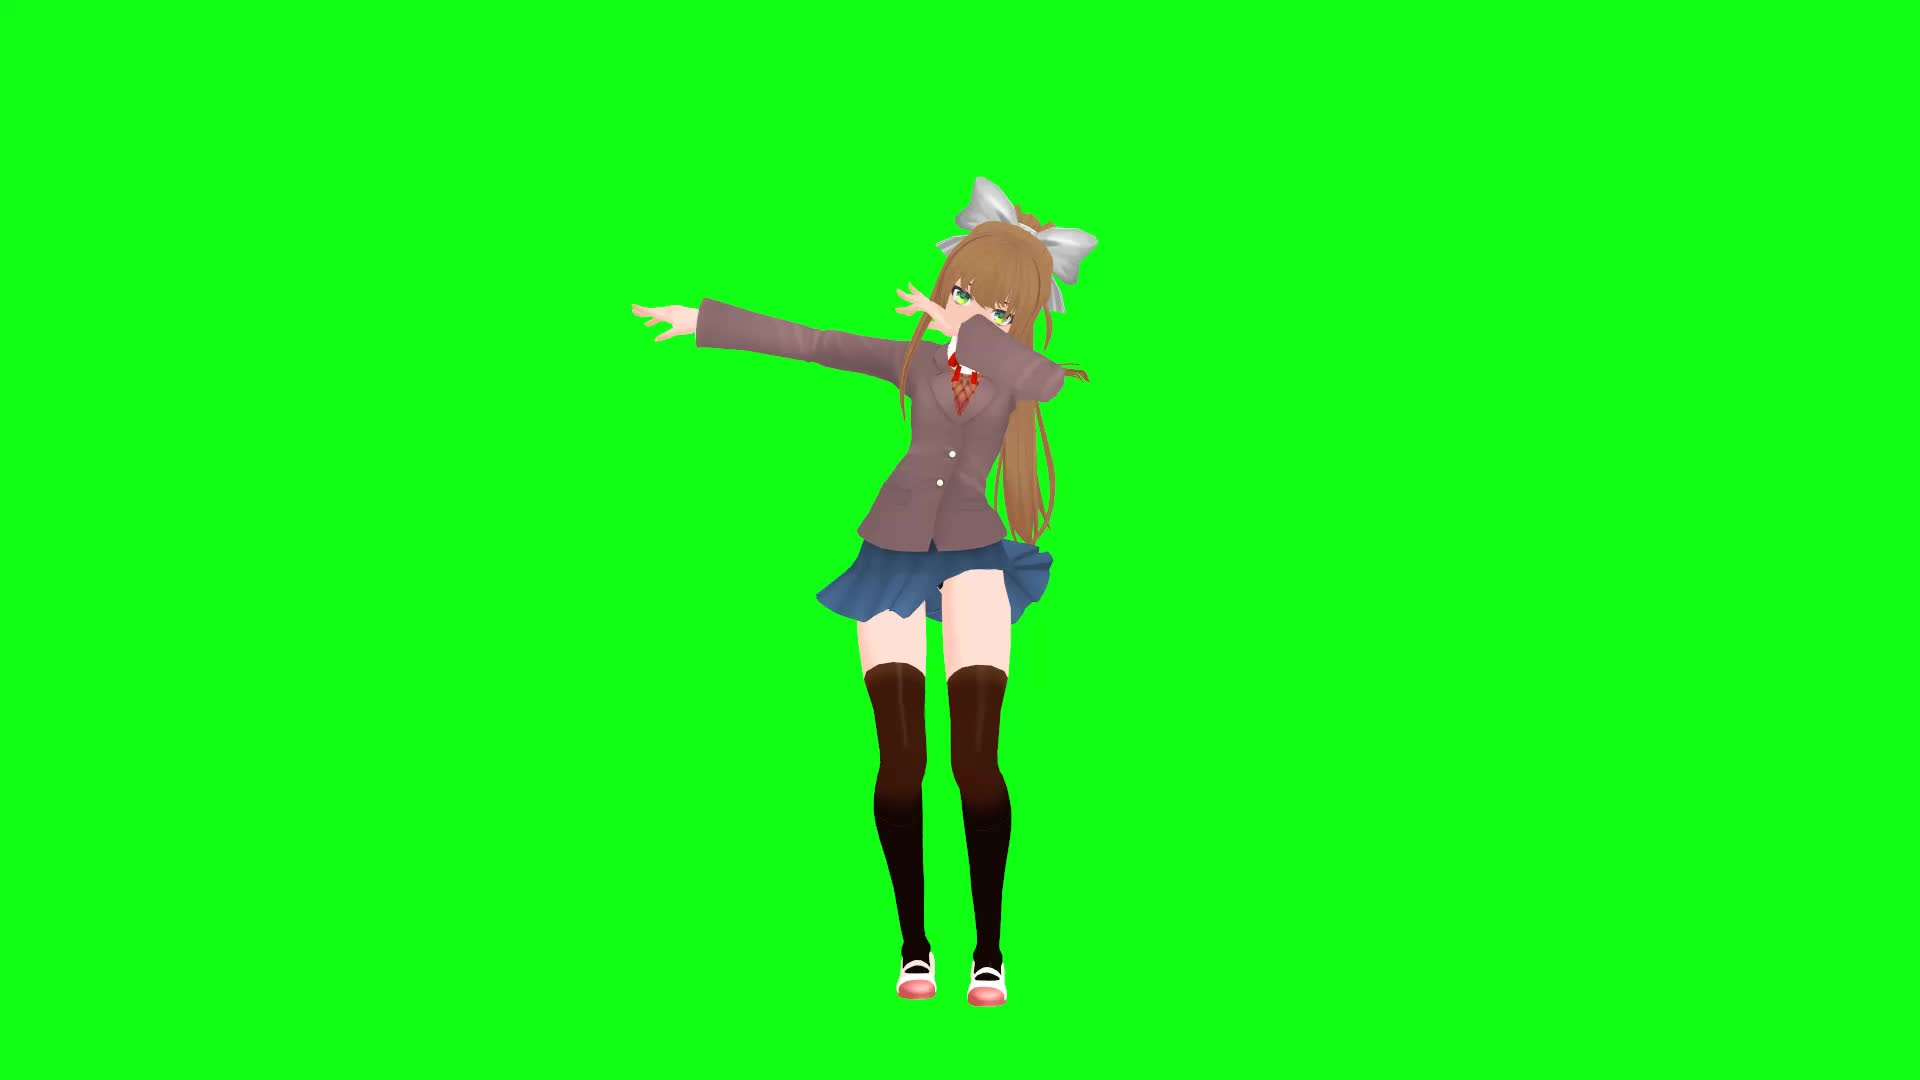 amp; Make By Gfycat gameguy Gif Infinite Gifs Find Dab Share